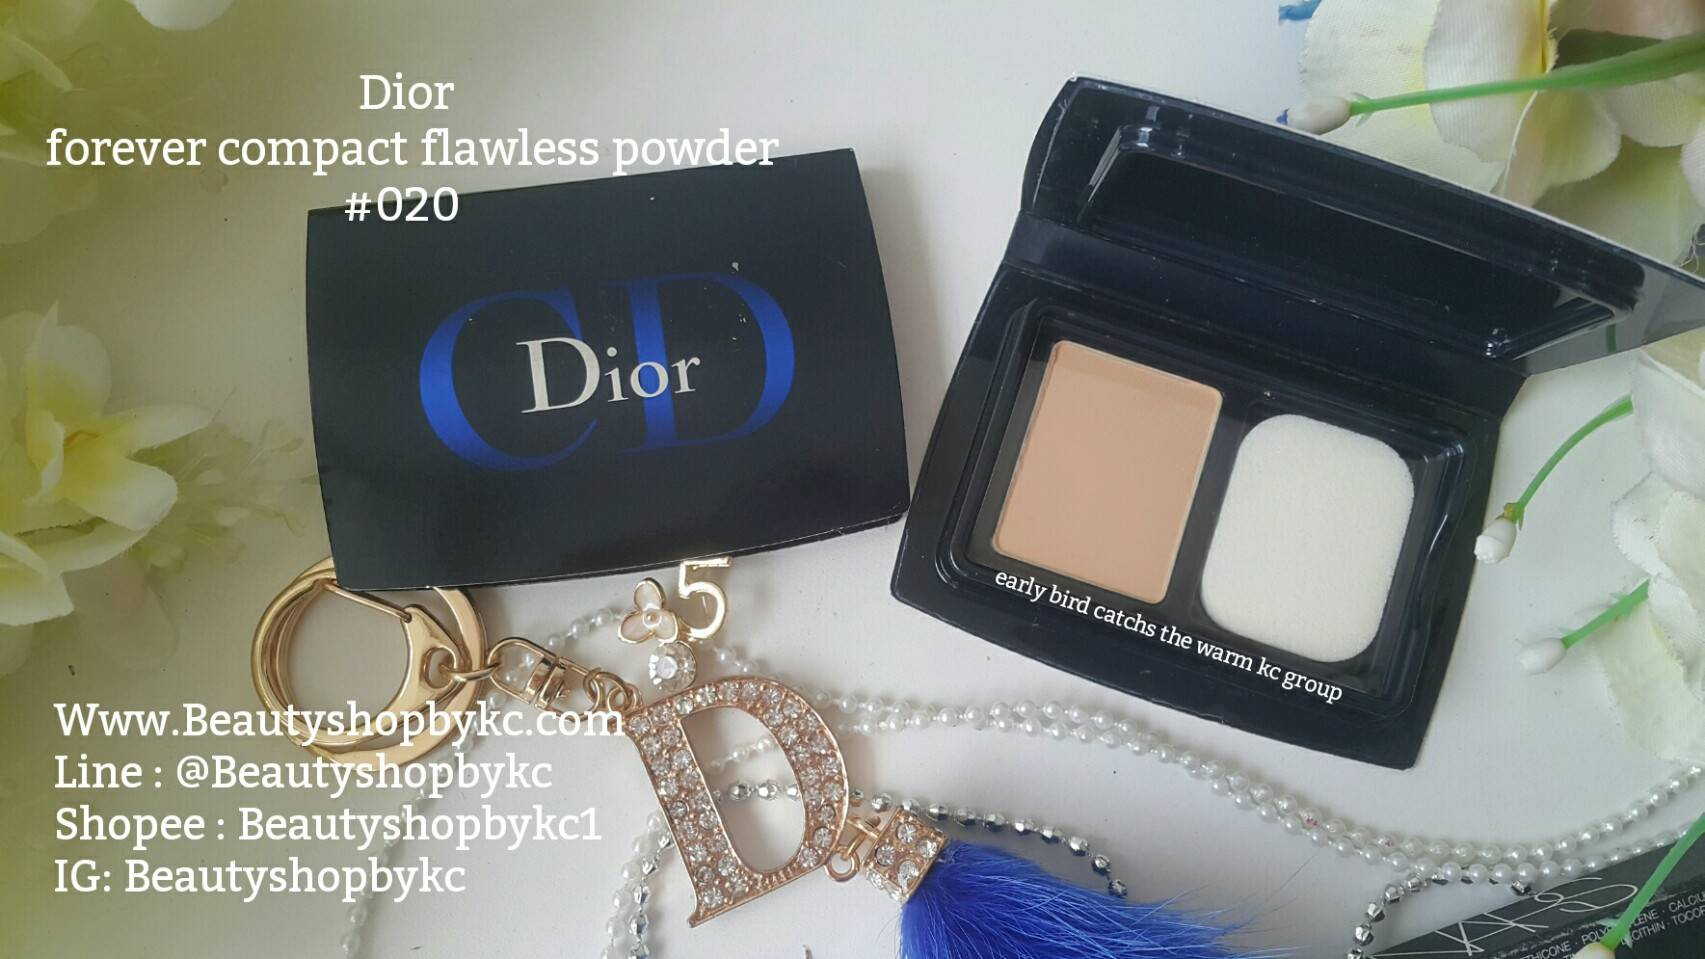 Diorskin Forever Compact Flawless Perfection Fusion Wear Makeup by Dior #3